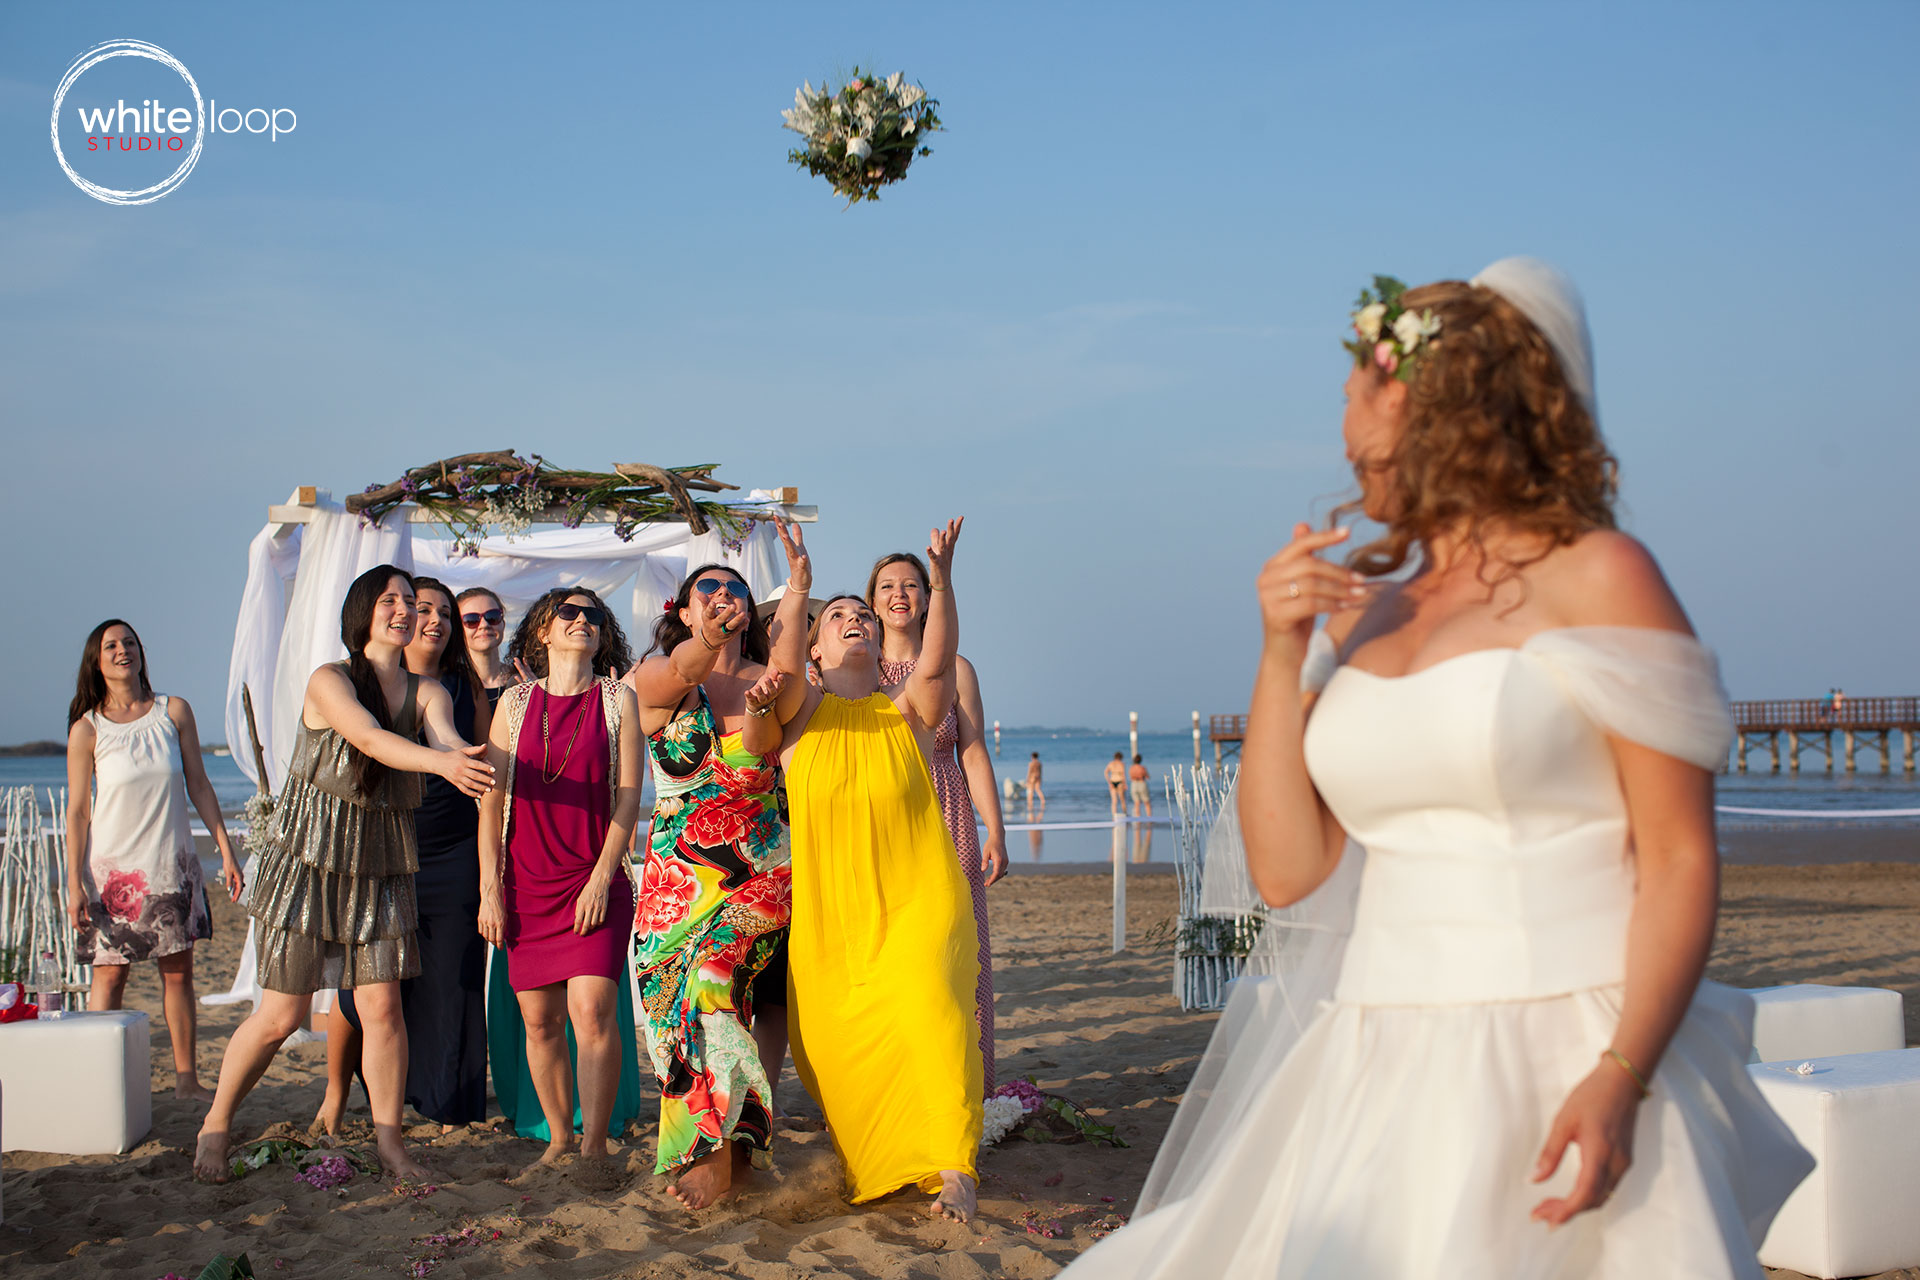 The bride is throwing the bouquet for some guests, as a tradition of who will be the next woman to get married.